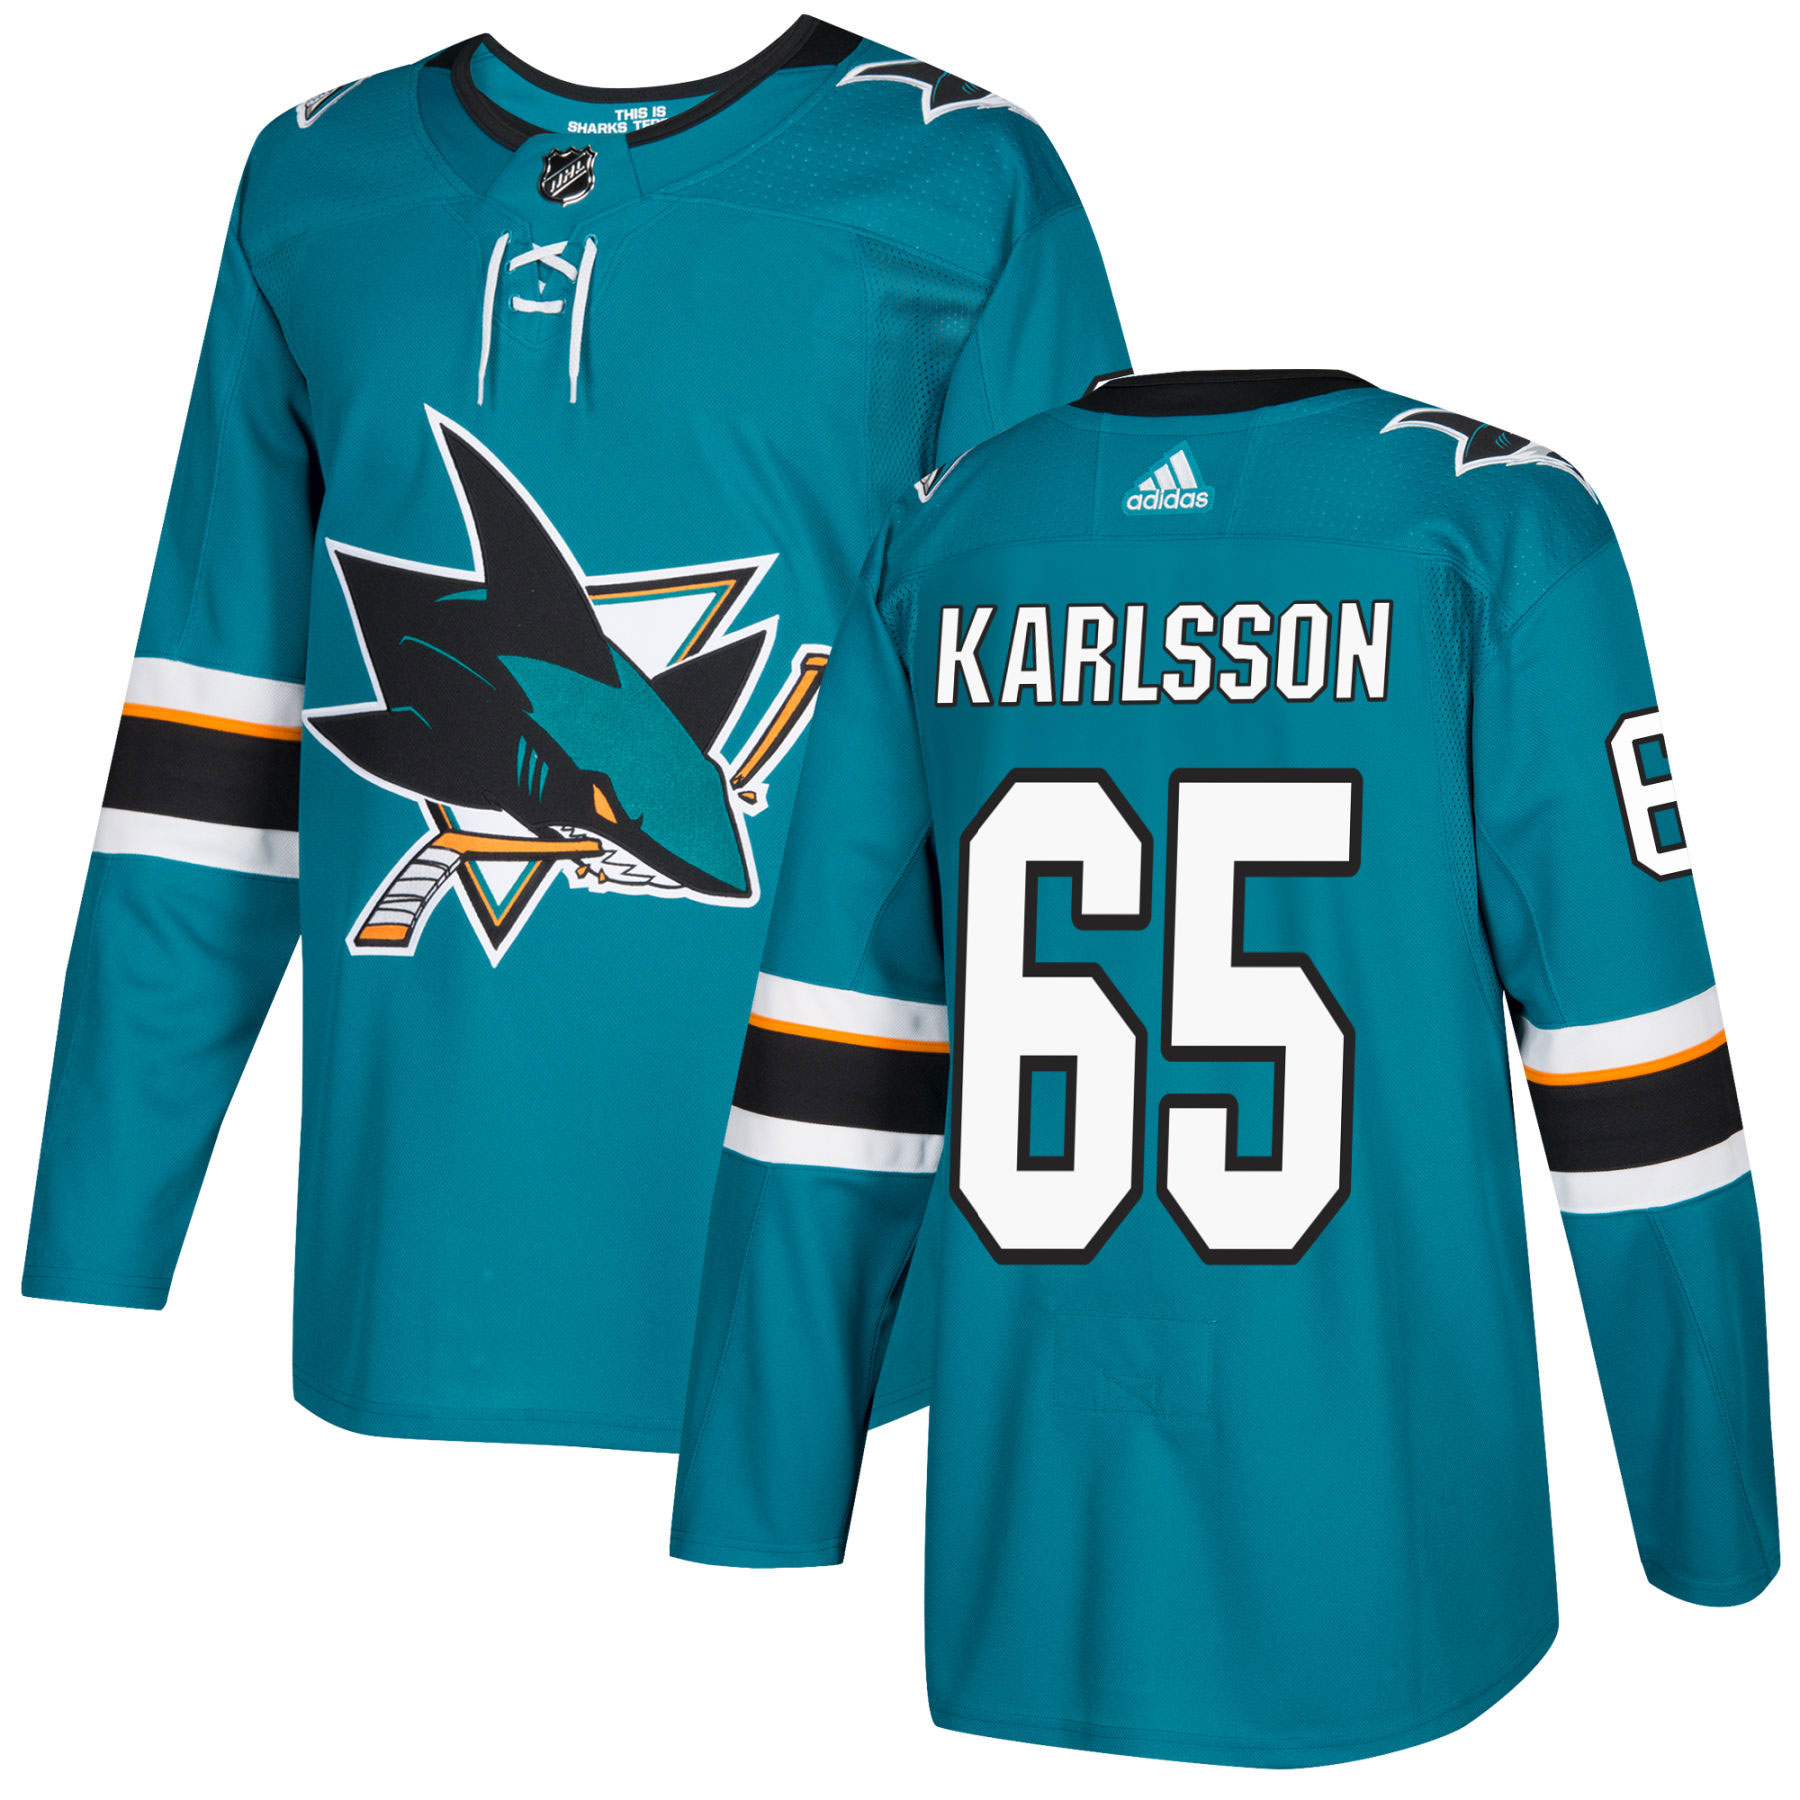 info for 67958 5113b Erik Karlsson San Jose Sharks adidas NHL Authentic Pro Home Jersey - Pro  Stitched